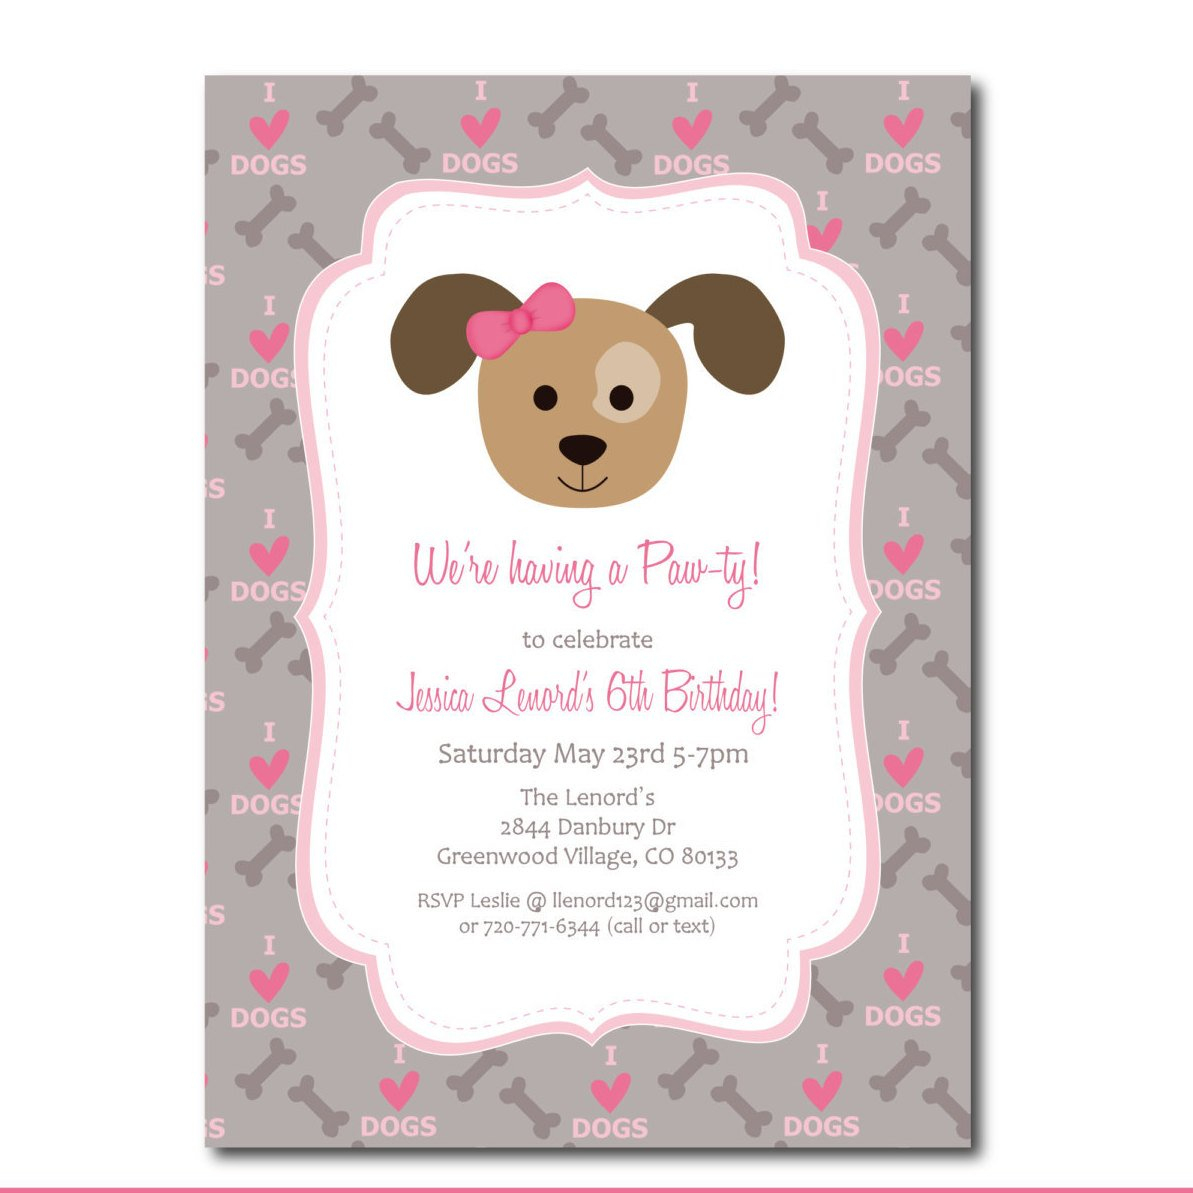 Puppy Shower Invitations Free Free Printable Puppy Shower Invitations - Free Printable Puppy Dog Birthday Invitations